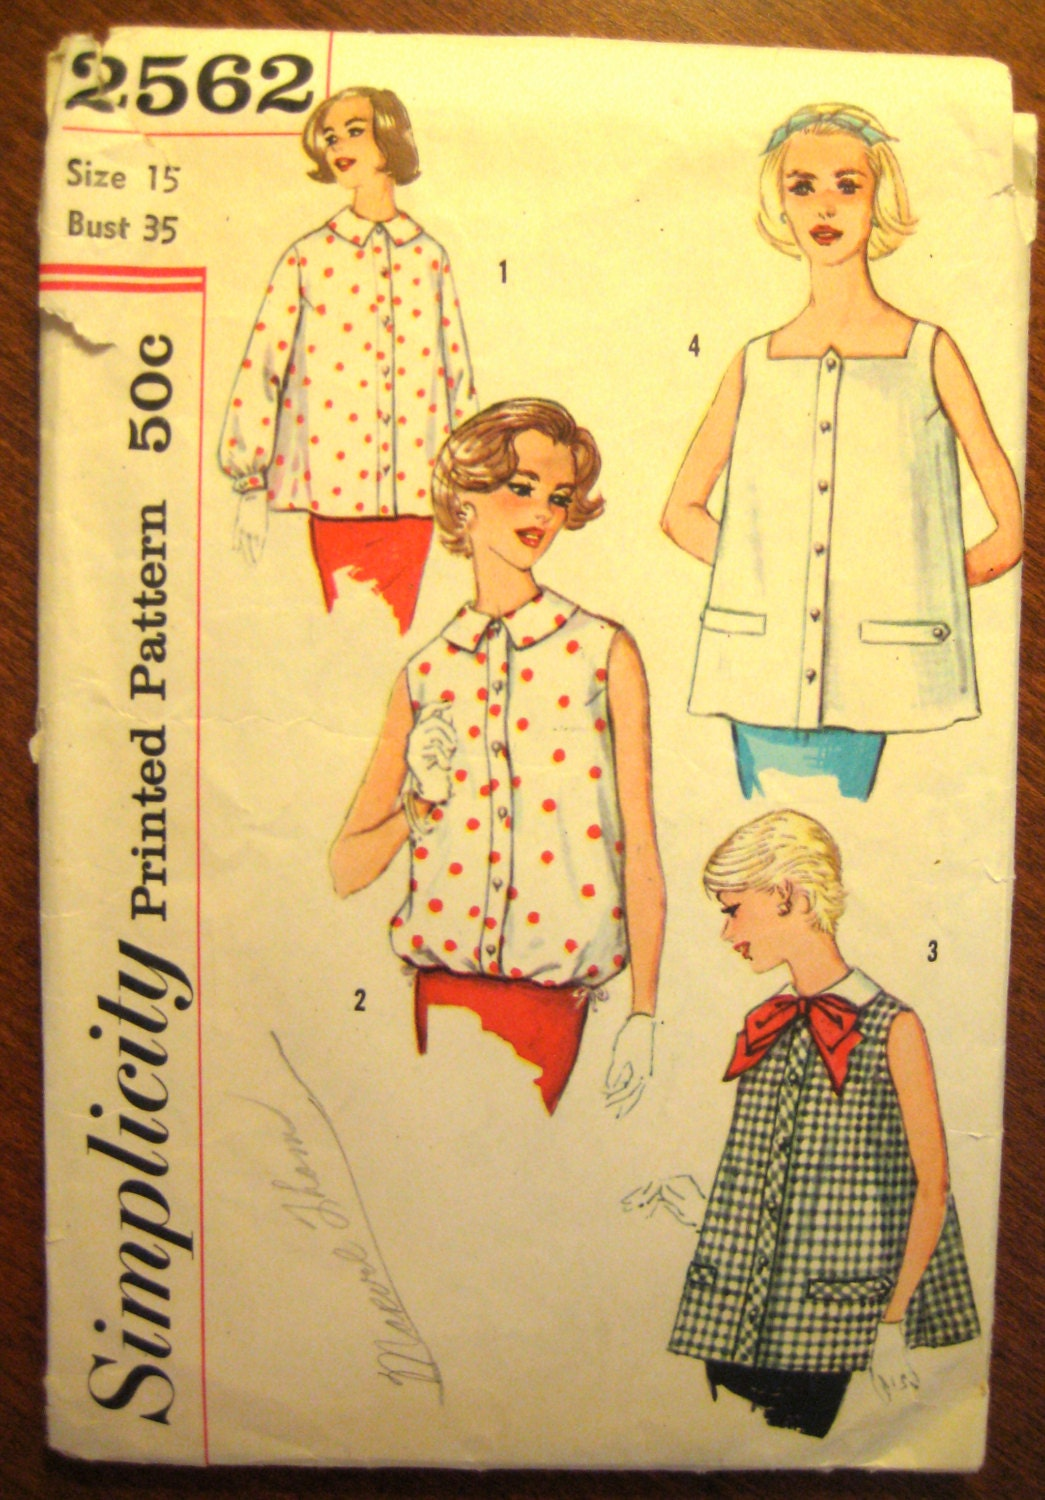 Vintage Sewing Pattern 1950s Maternity Blouse Peter